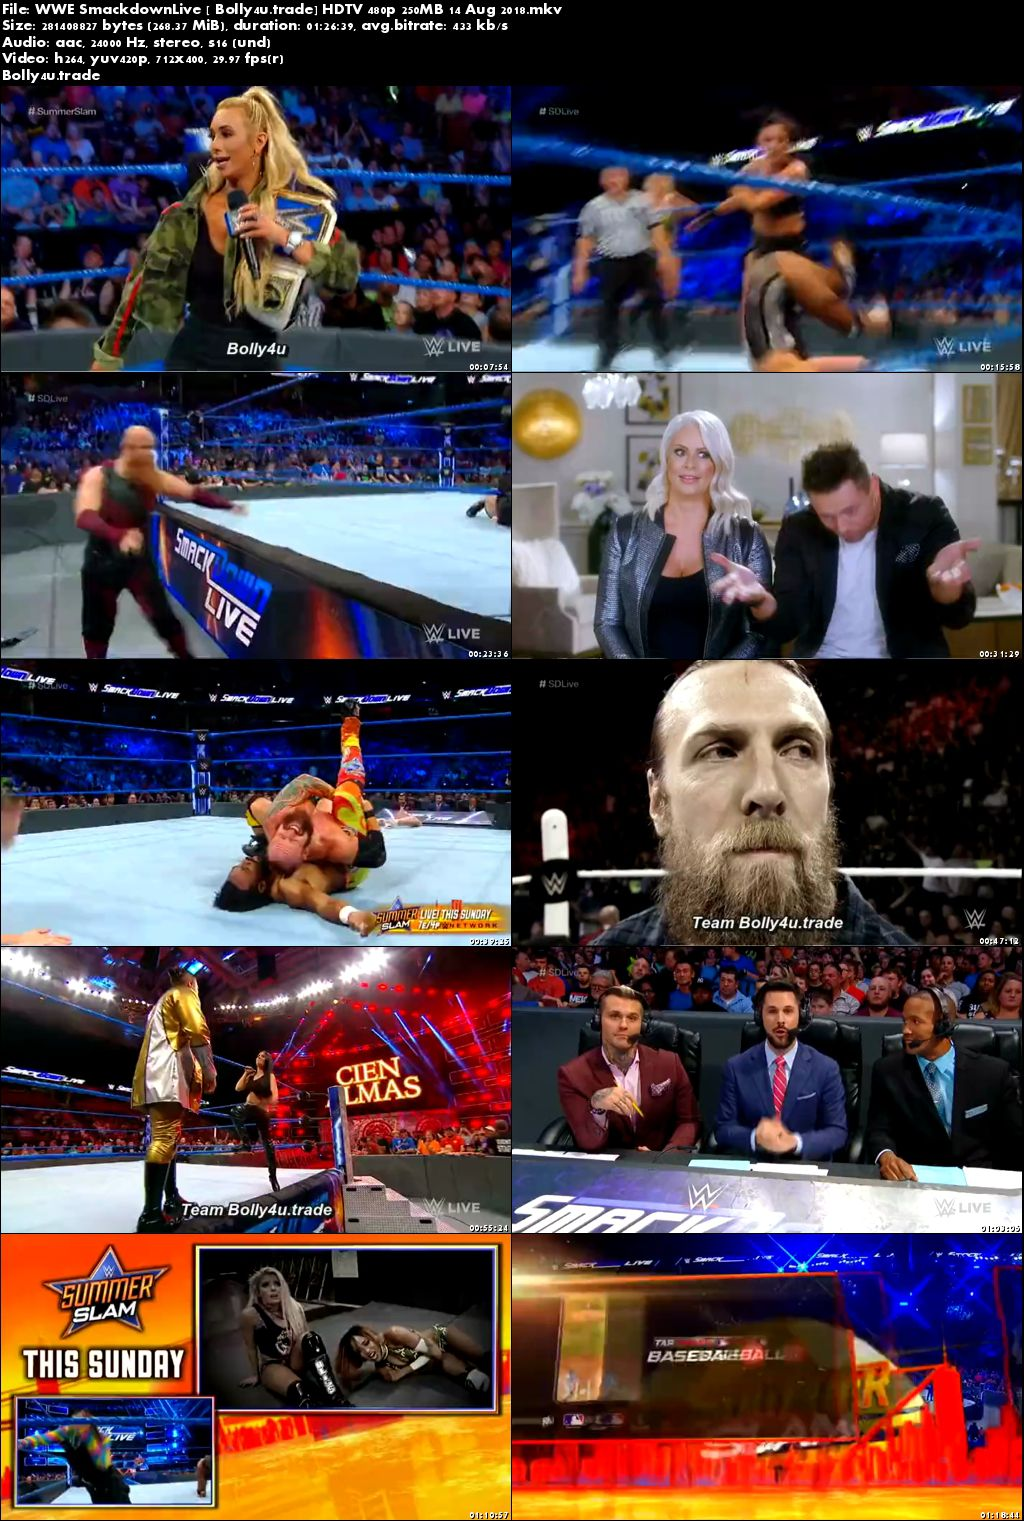 WWE Smackdown Live HDTV 480p 250MB 14 Aug 2018 Download